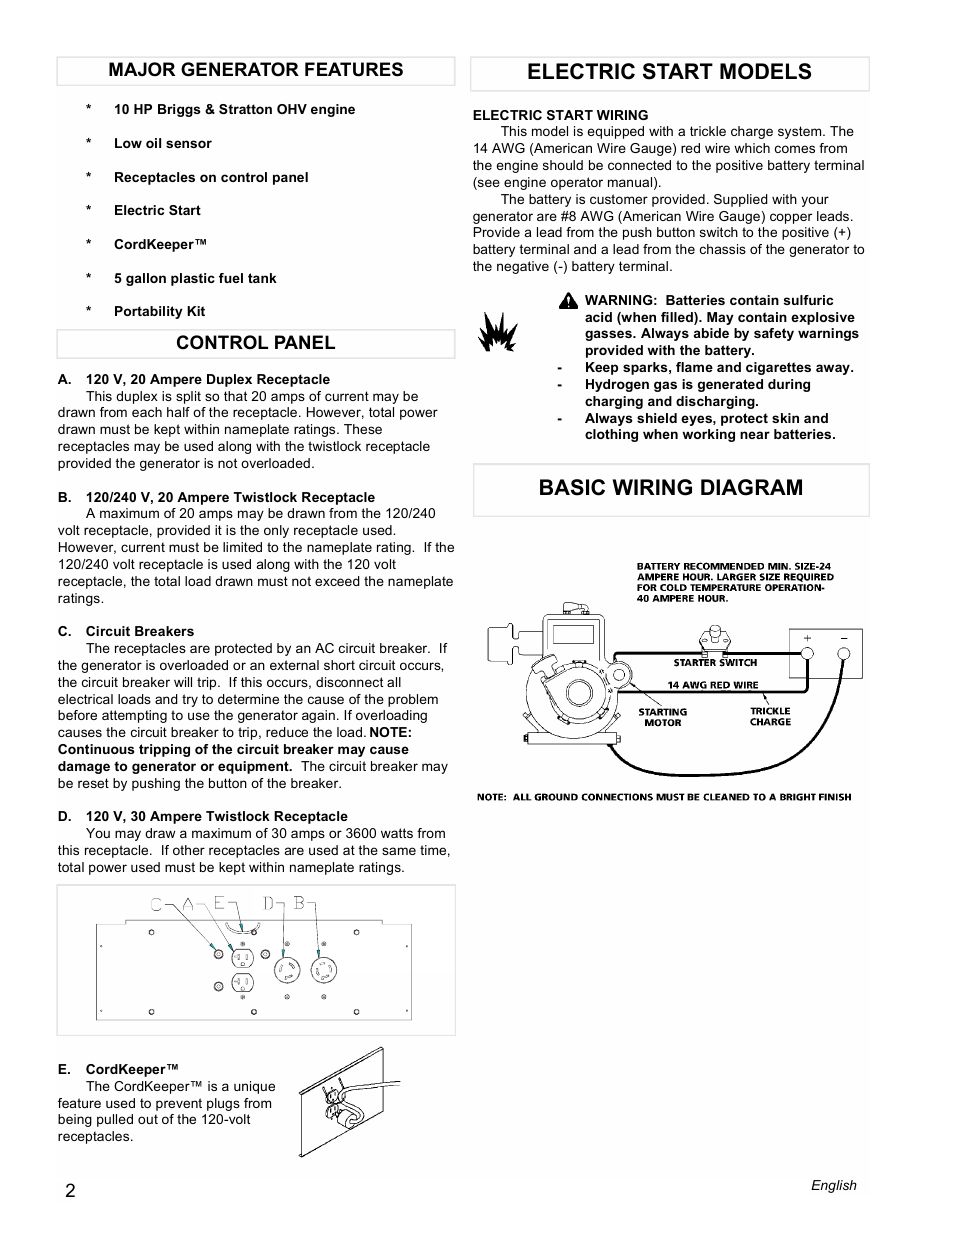 Electric Start Models Basic Wiring Diagram Control Panel Major 24 Hp Briggs And Stratton Generator Features Powermate Pma505622 User Manual Page 2 12